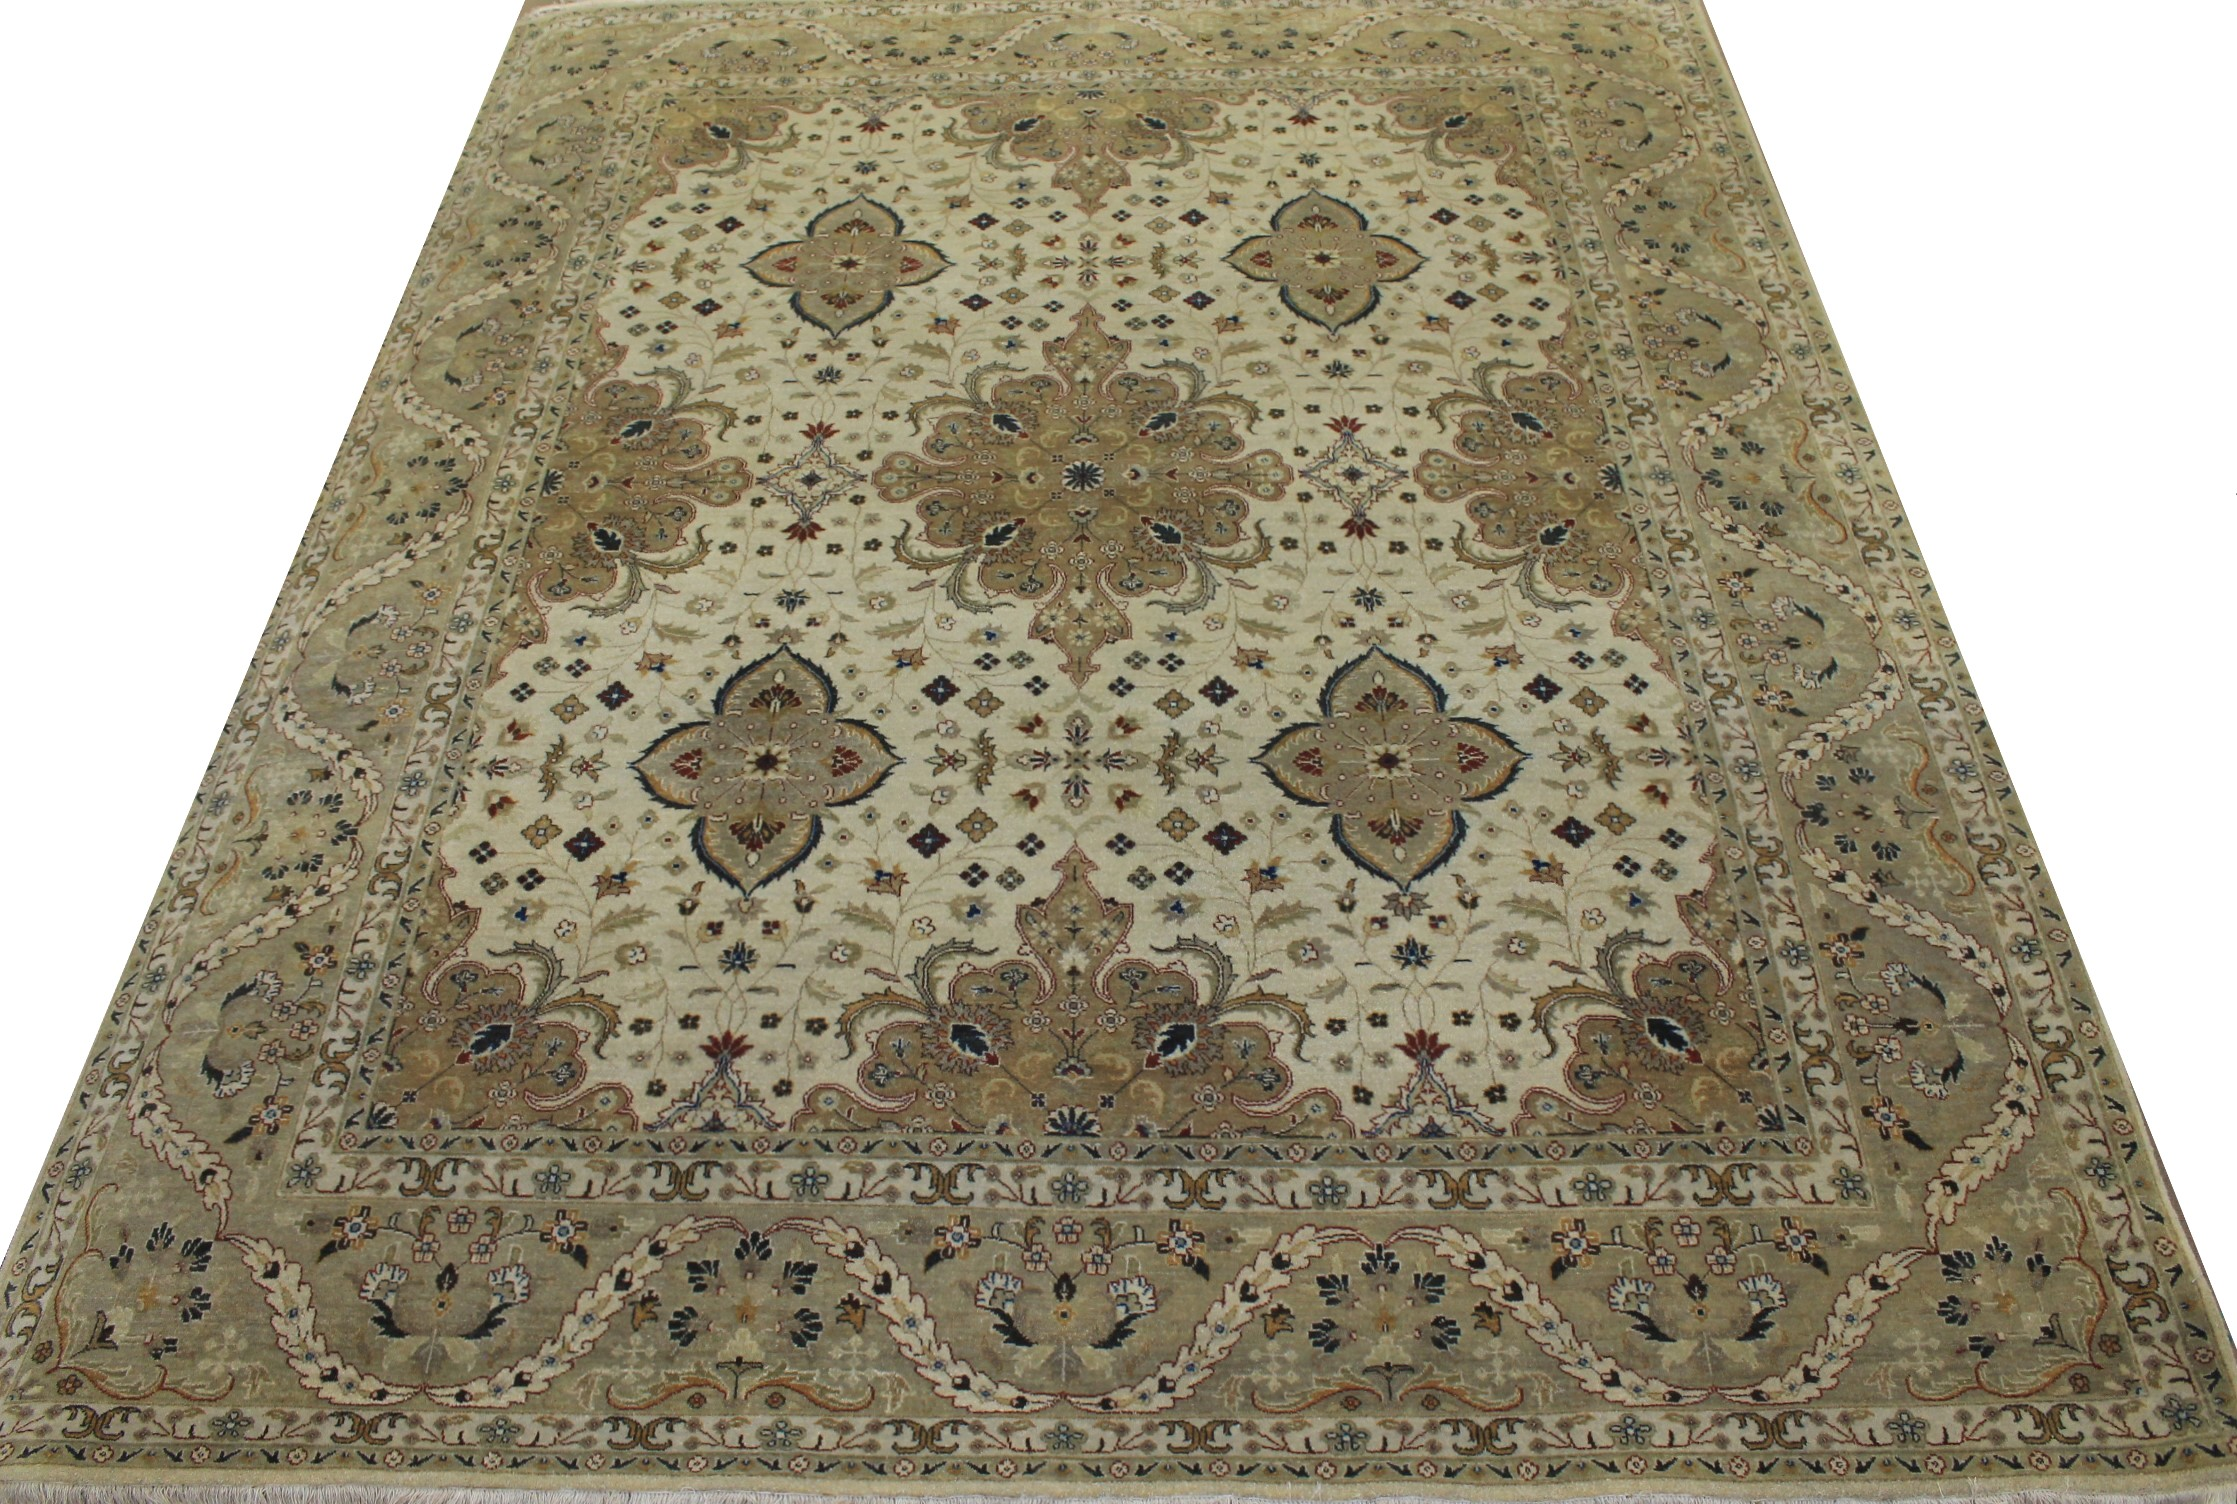 8x10 Traditional Hand Knotted Wool Area Rug - MR11174